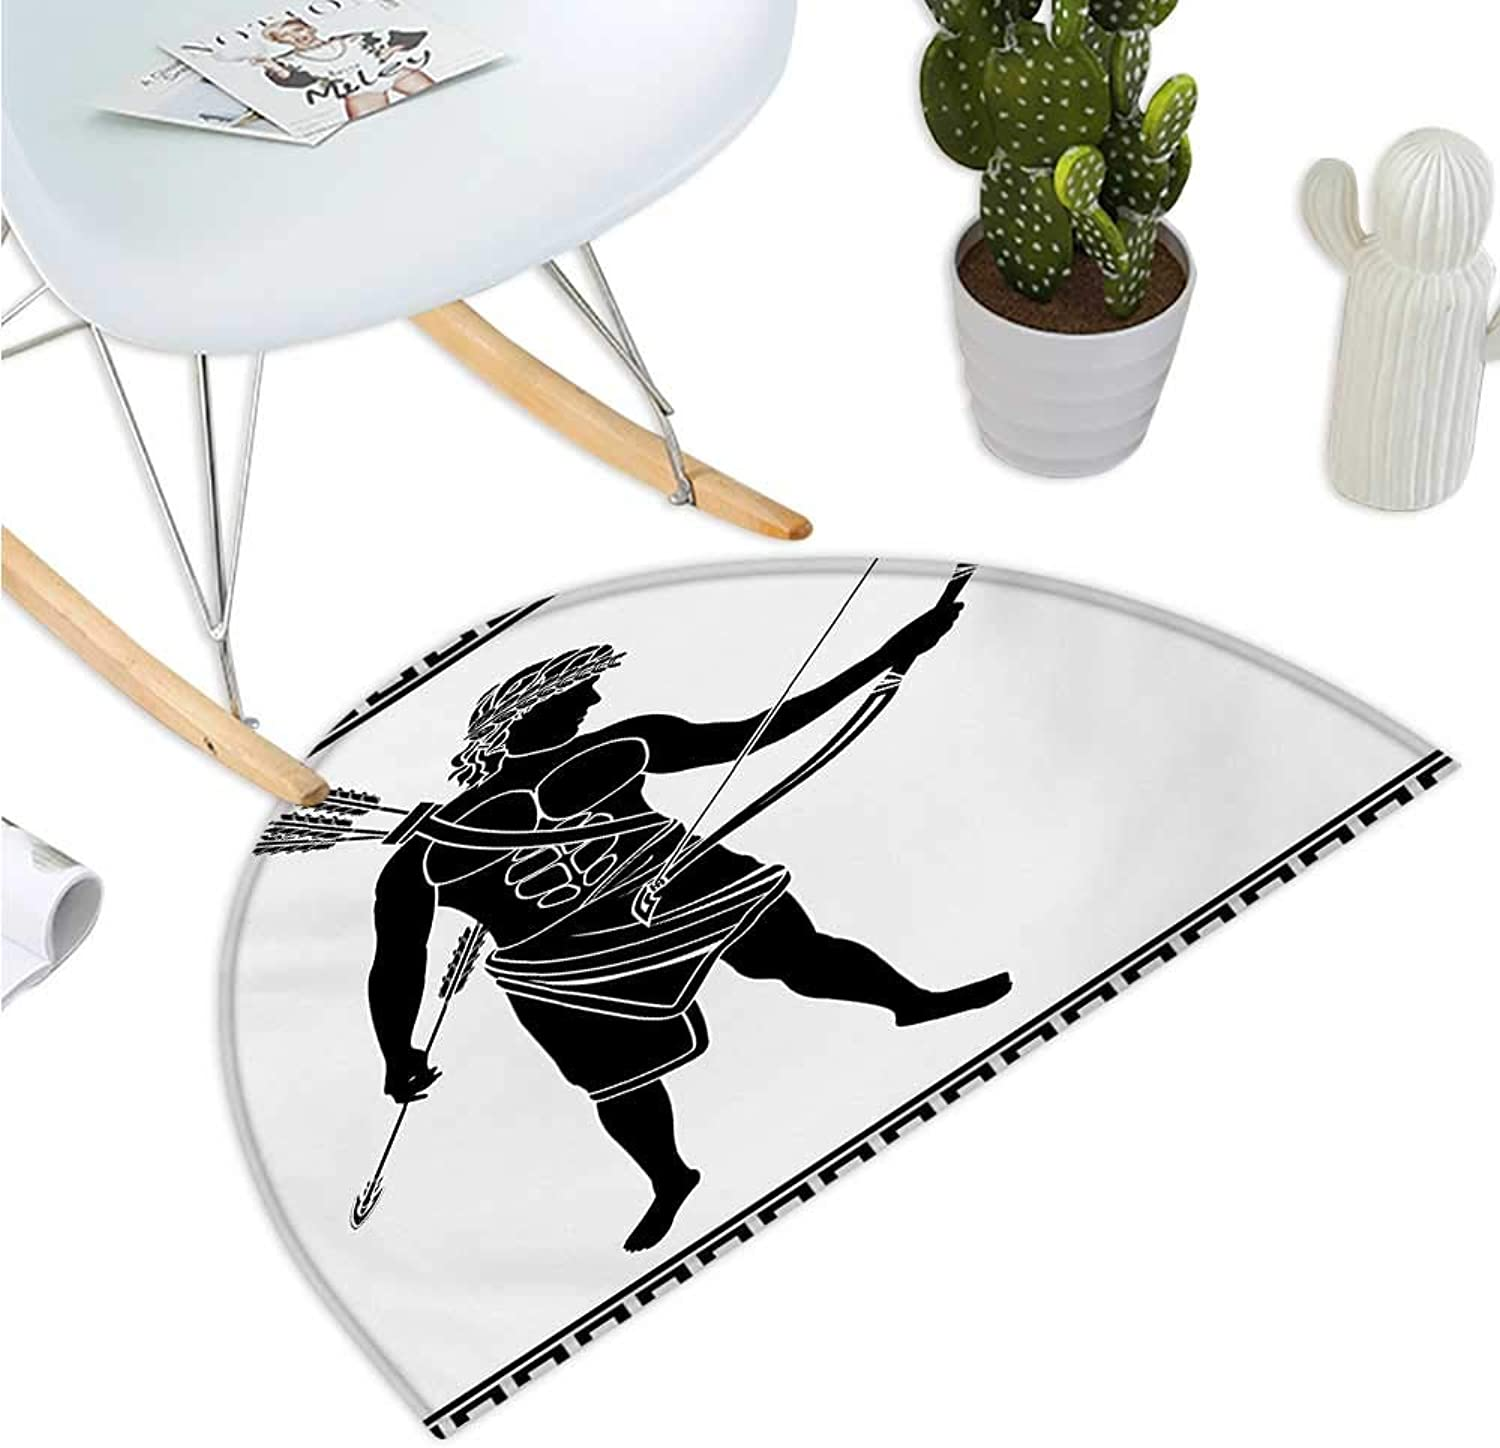 Toga Party Semicircular Cushion Hellenic Bowman Silhouette Eros Fantasy Gladiator Old Mediterranean Print Halfmoon doormats H 39.3  xD 59  Black and White